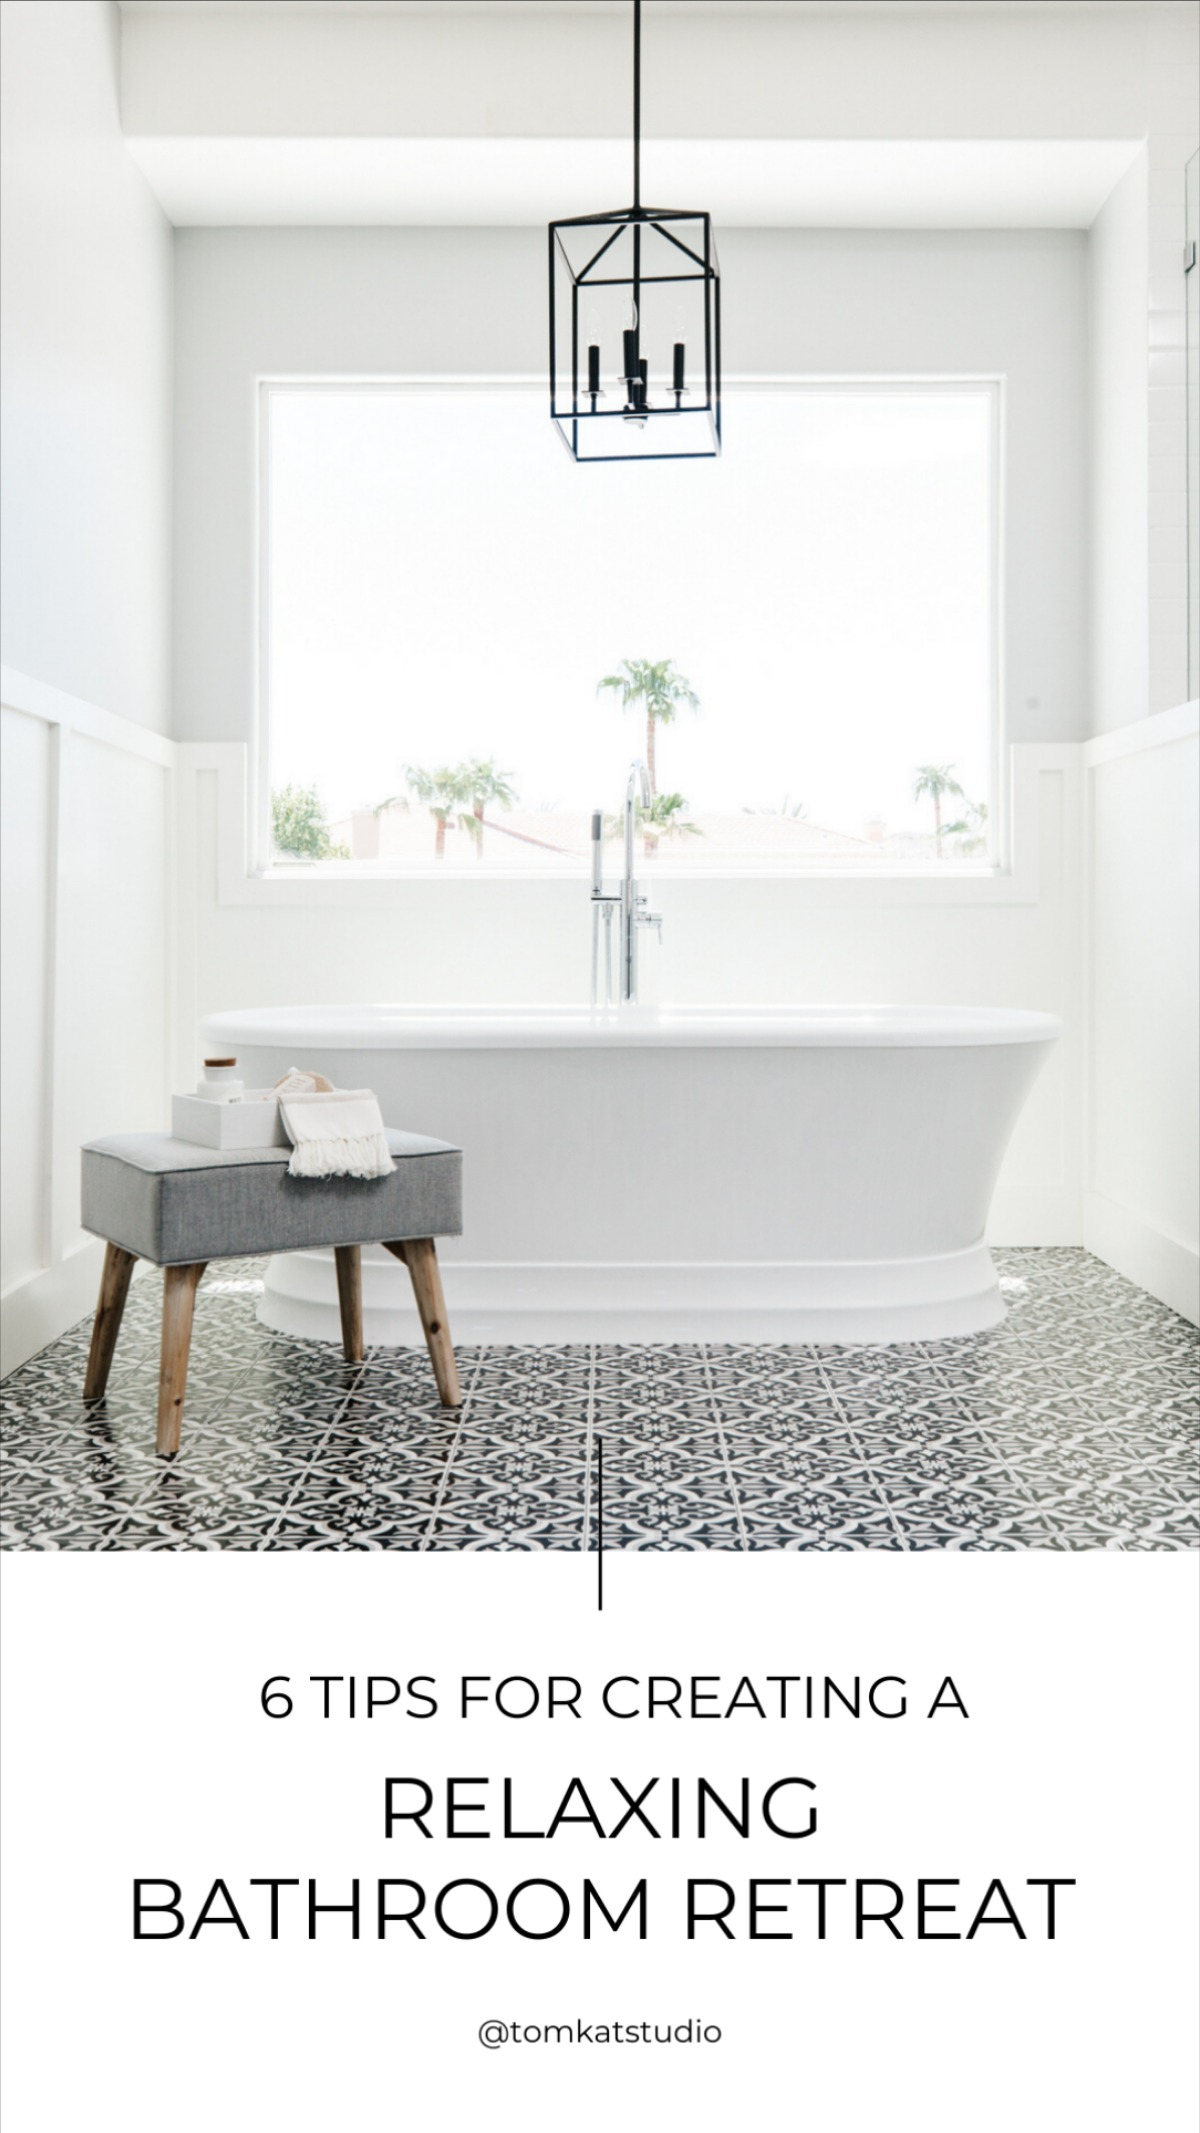 6 Tips for Creating a Relaxing Bathroom Retreat